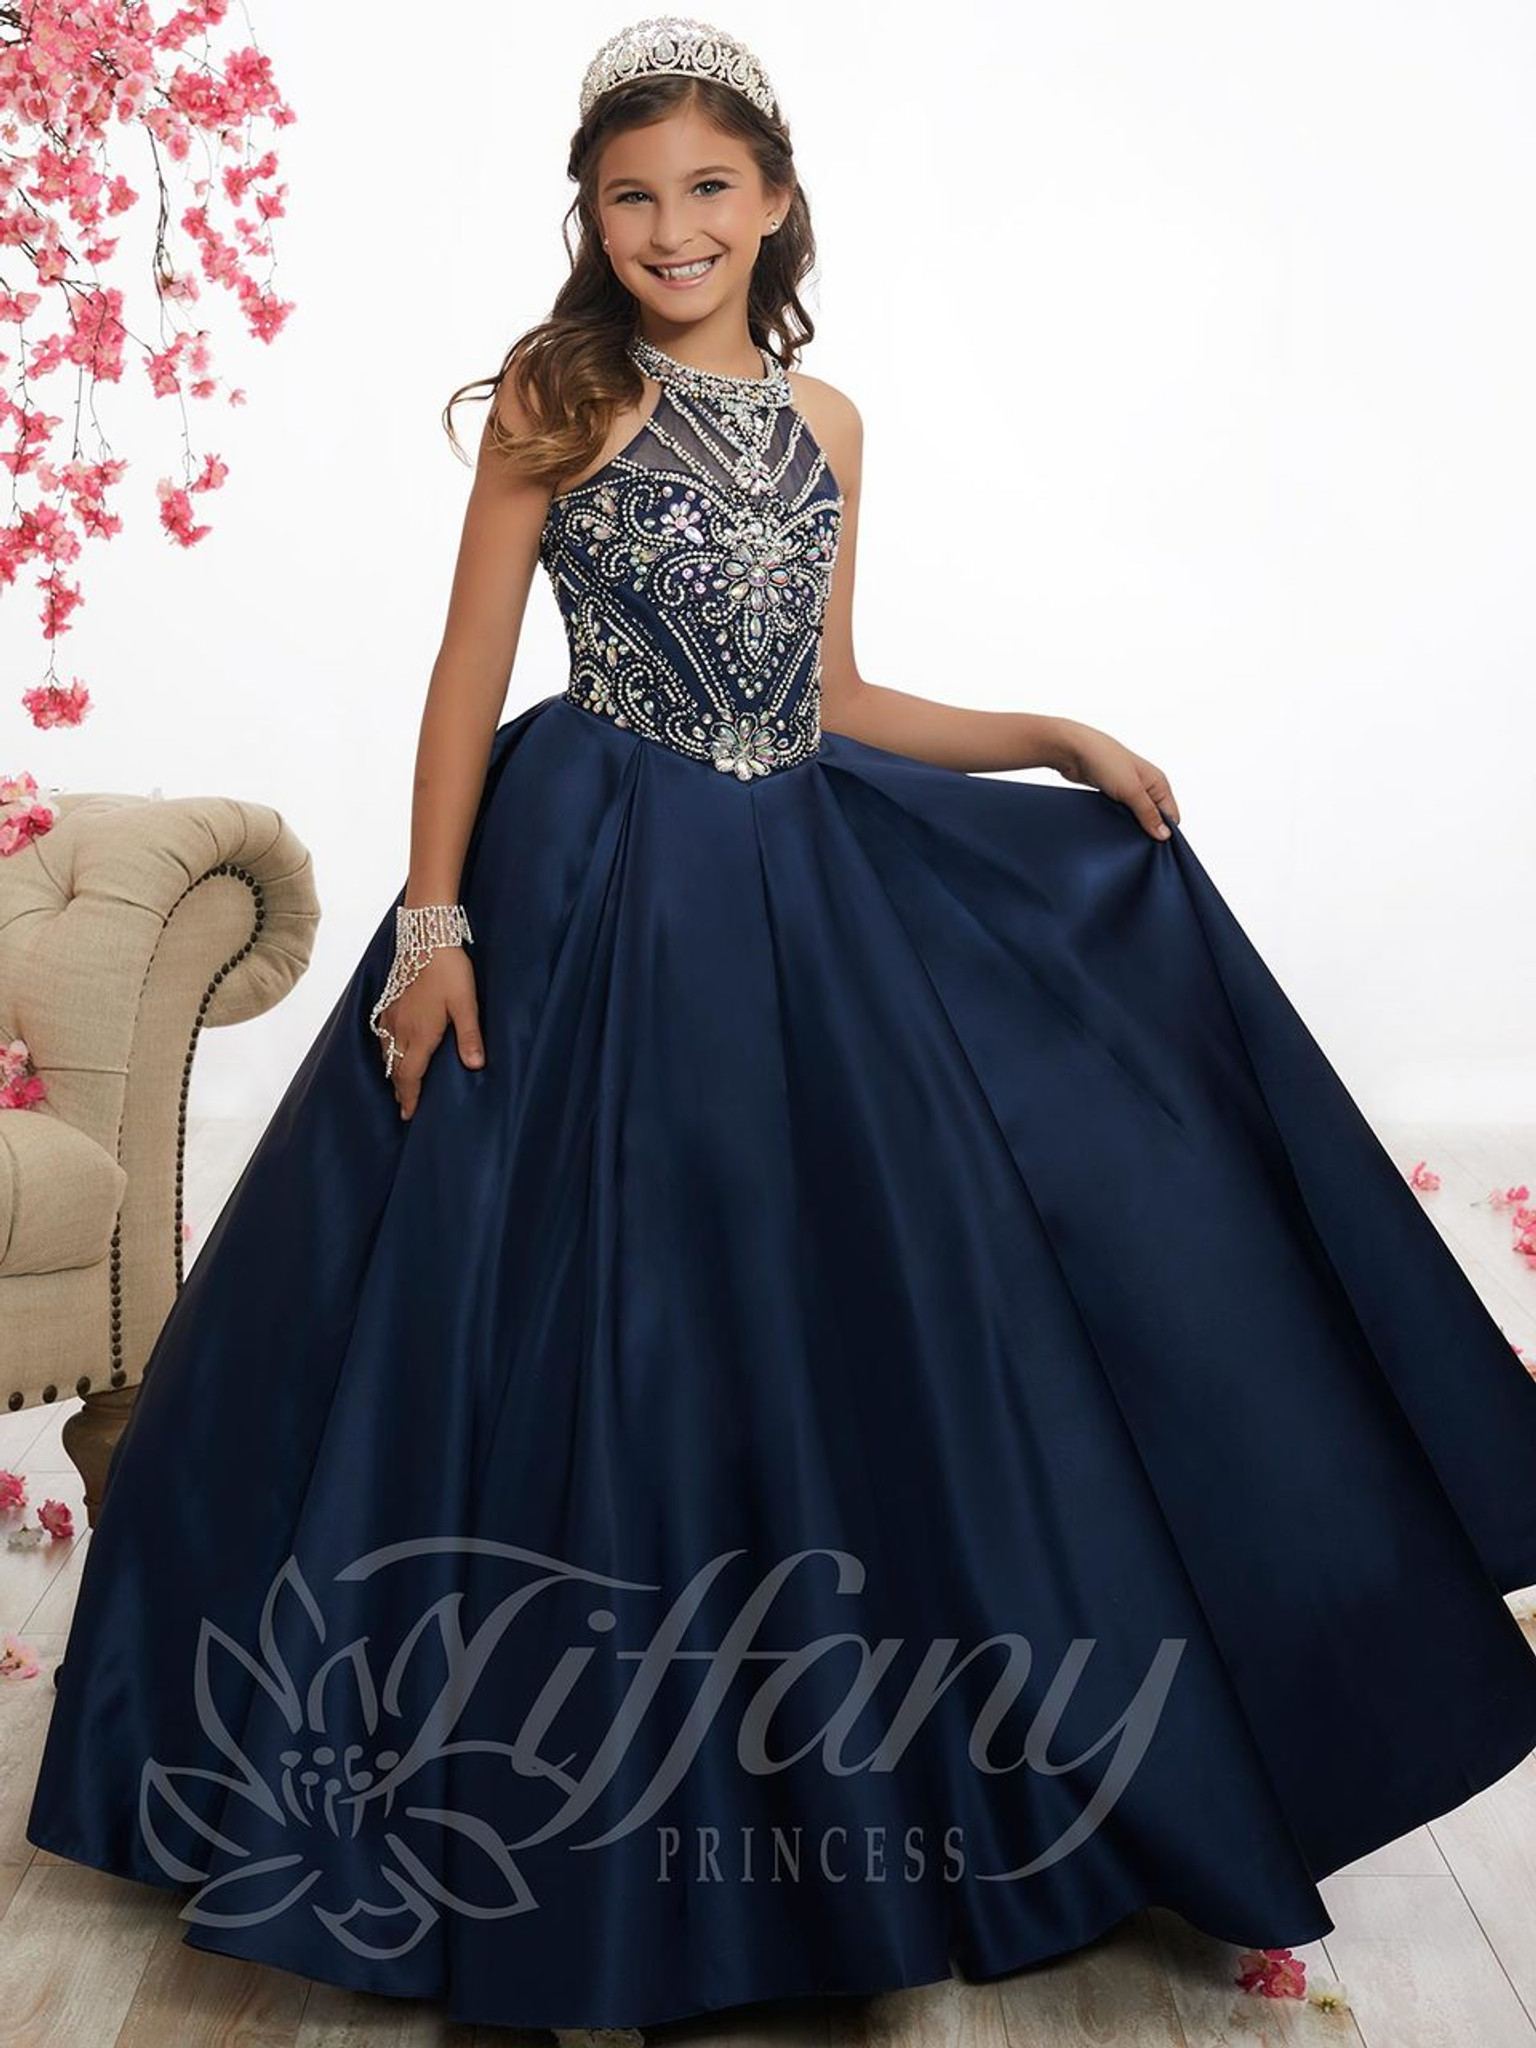 Sweetheart Illusion Pageant Gown by Tiffany Princess 13528